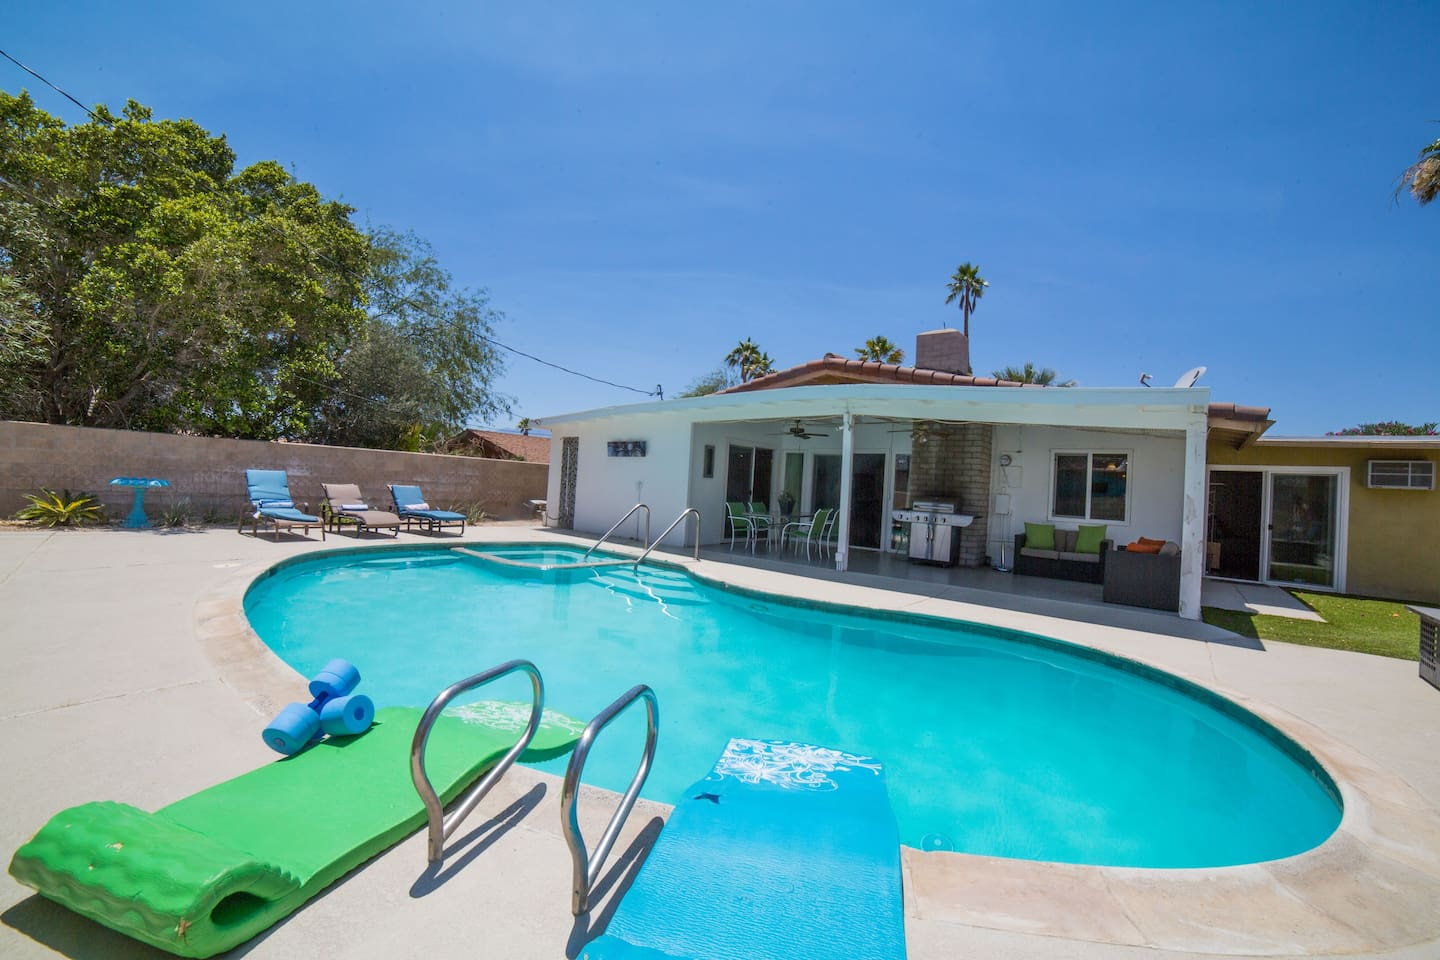 Best value designer pool home houses for rent in desert hot the large silky salt water pool is 6 feet at the deep end publicscrutiny Gallery